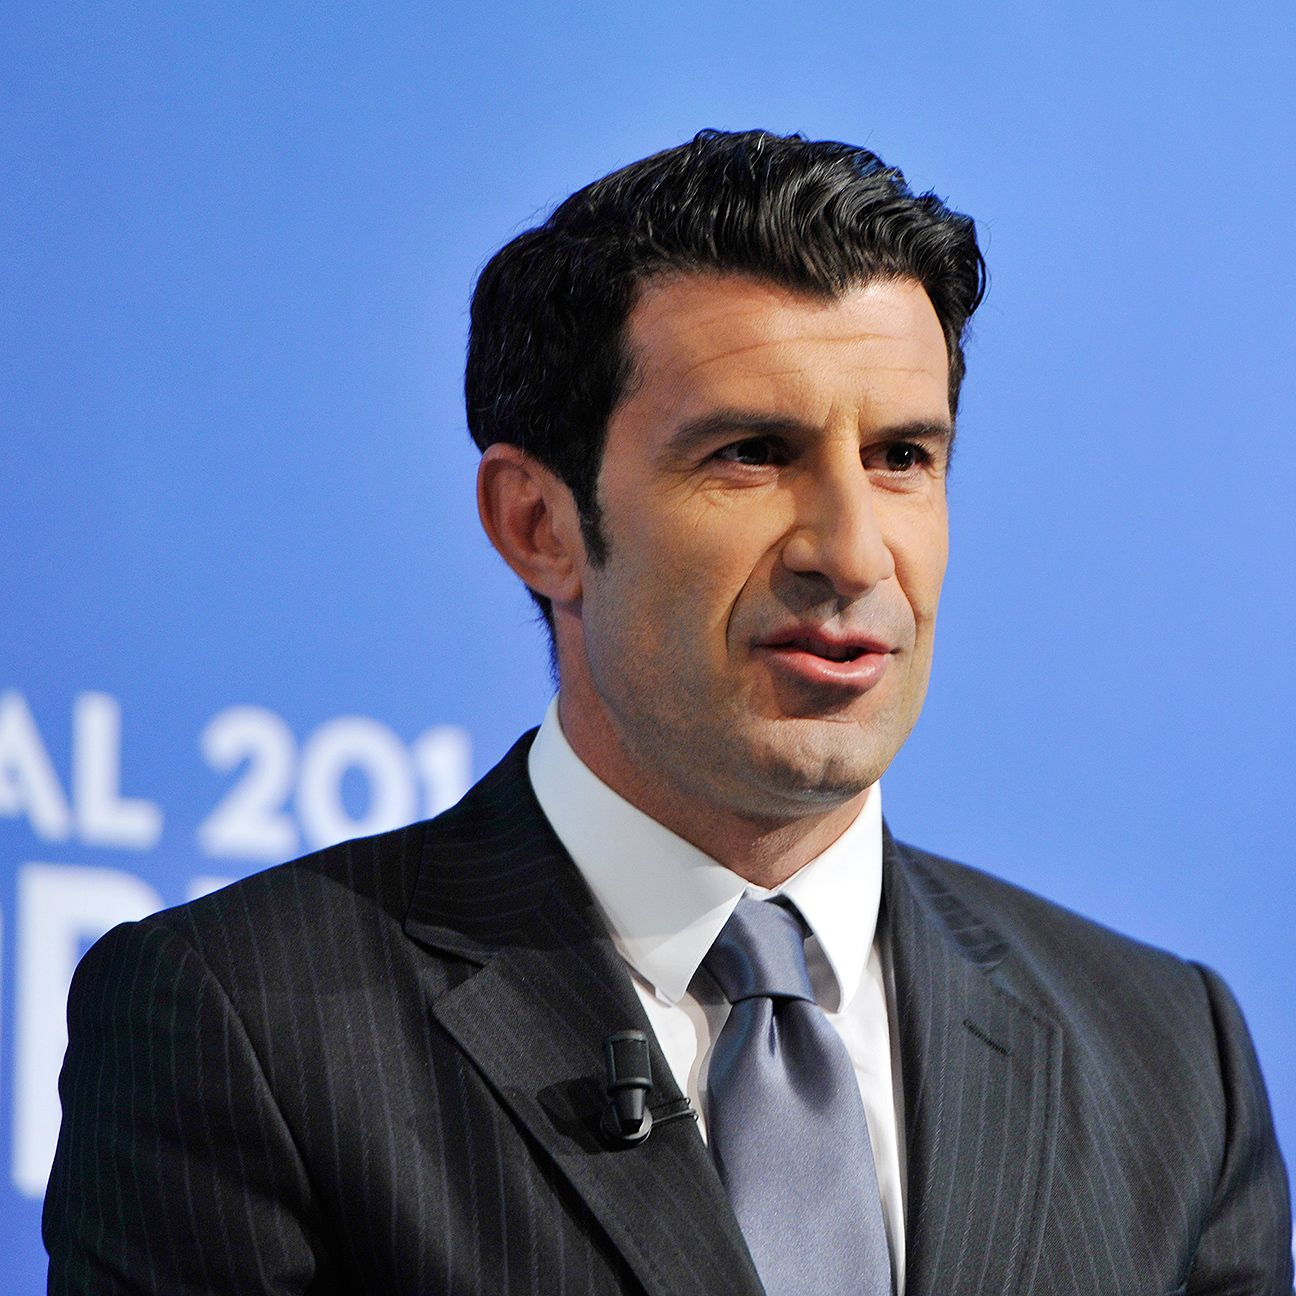 Luis Figo is hoping that his playing past will be an asset during the election.